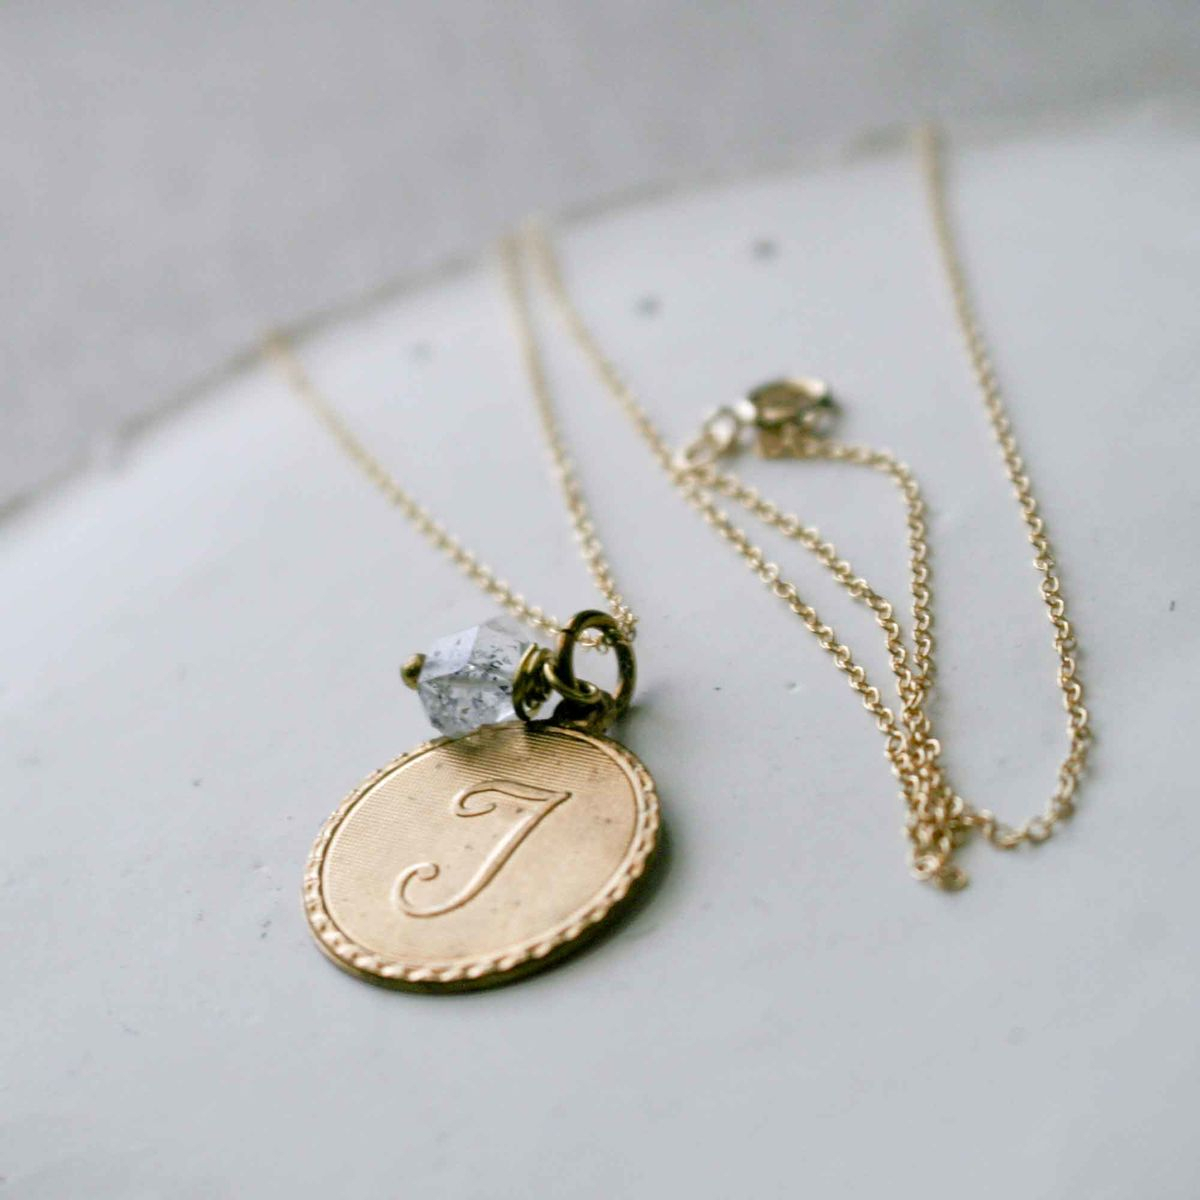 Uppercase Cursive Initial Monogram Letter Round Disc Charm Necklace Pertaining To 2019 Letter B Alphabet Locket Element Necklaces (View 24 of 25)